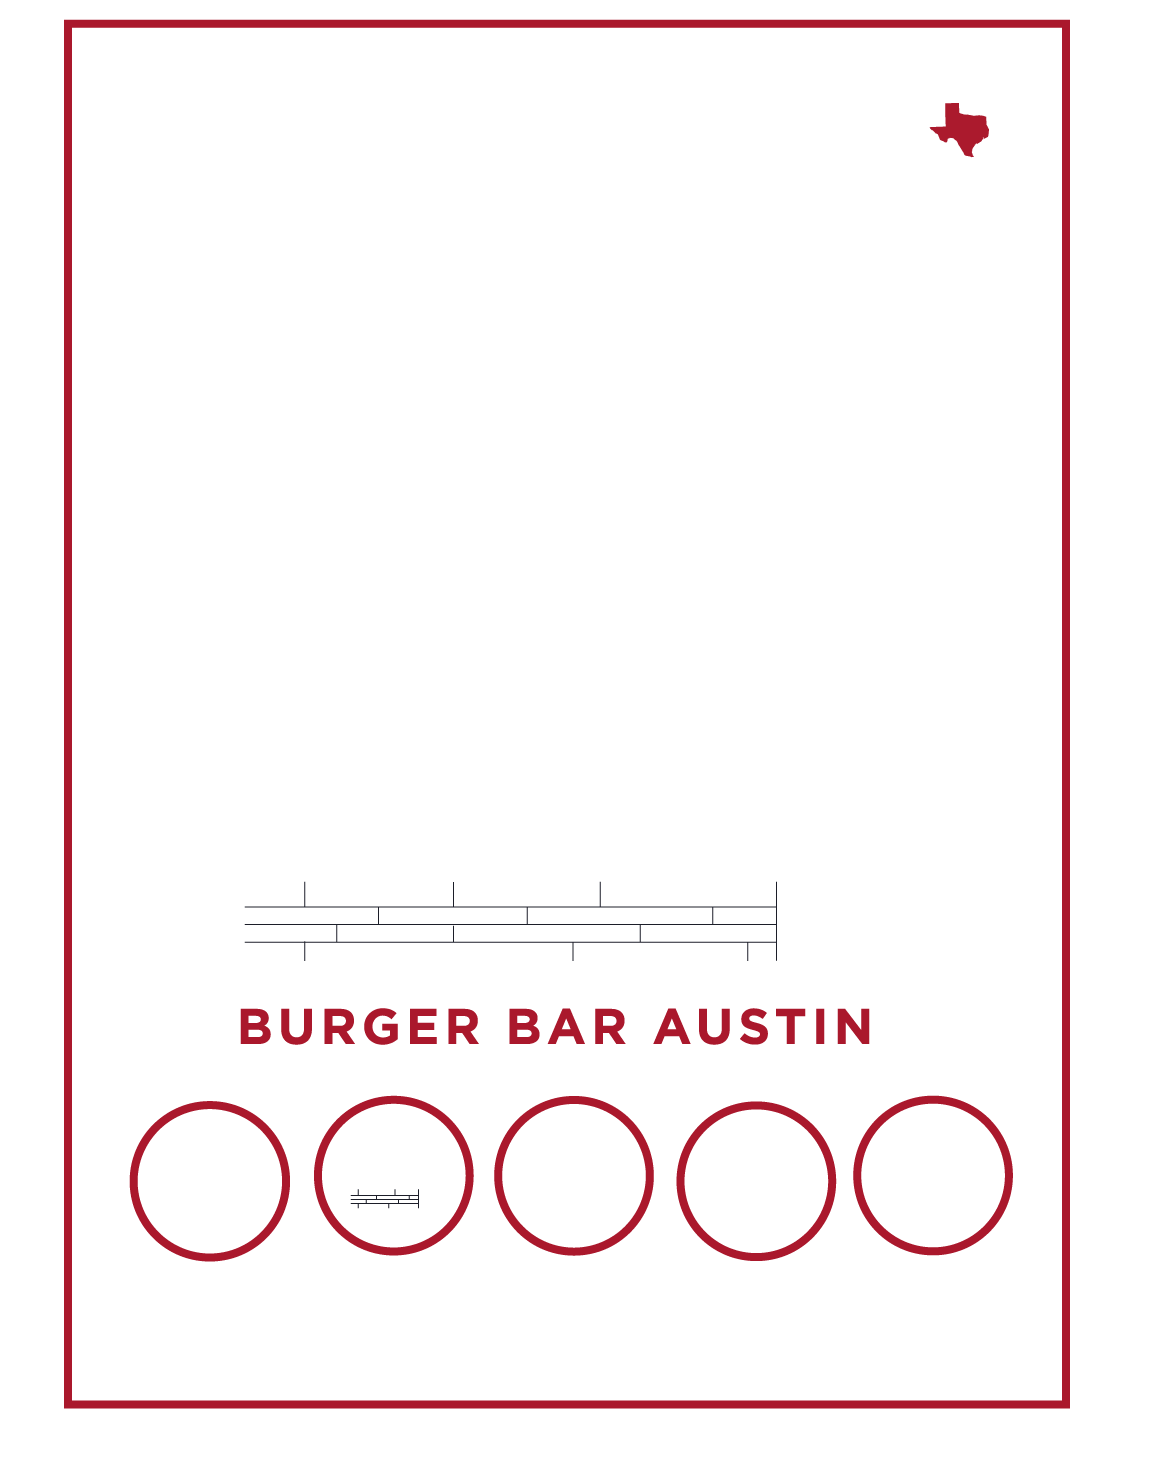 congress-revised-5-20.png